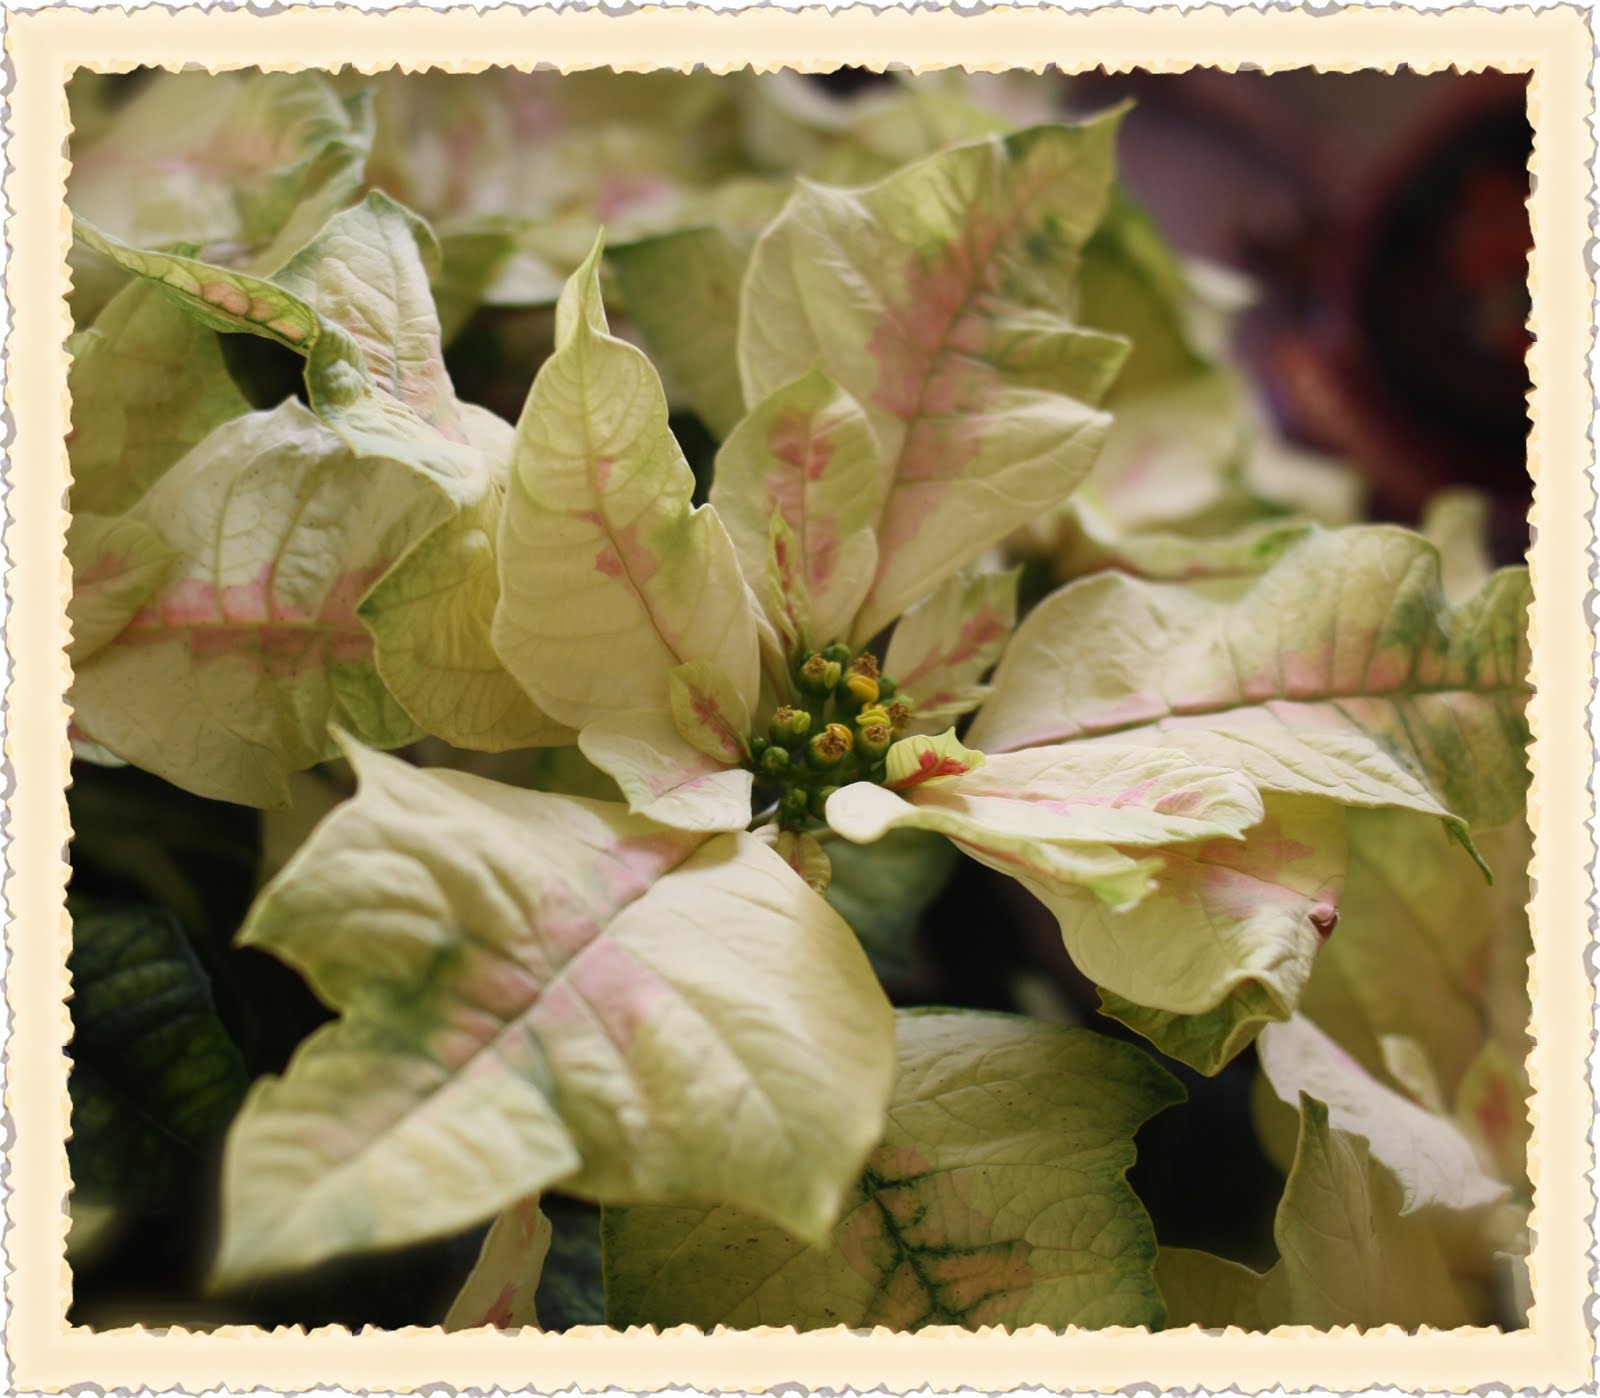 Rose Vignettes Fresh Cut Friday 16 Poinsettia December Flower of the Month